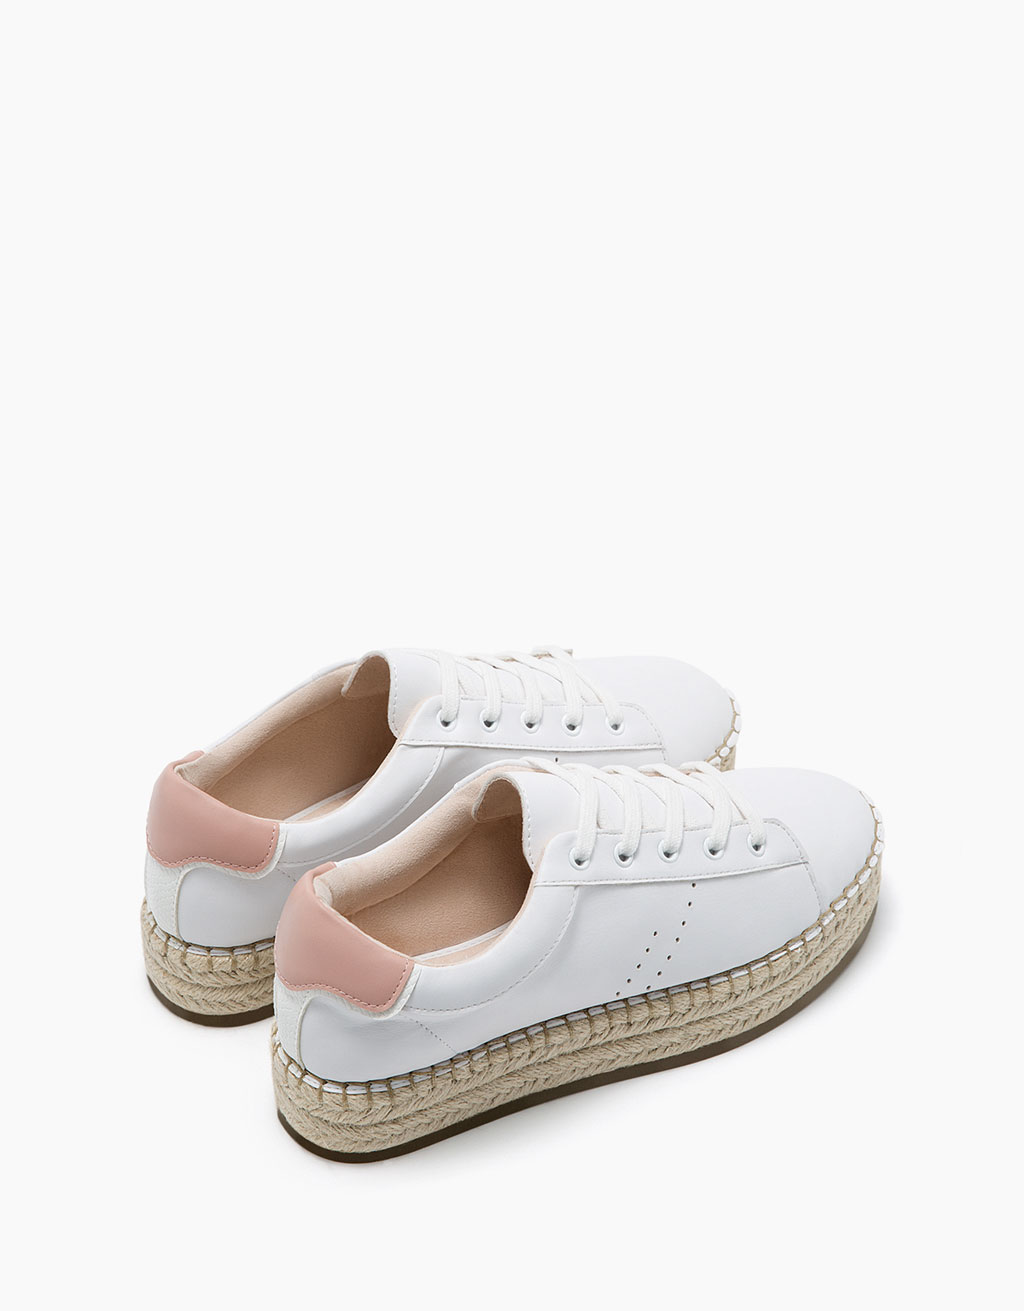 Lace-up sneakers with jute platform